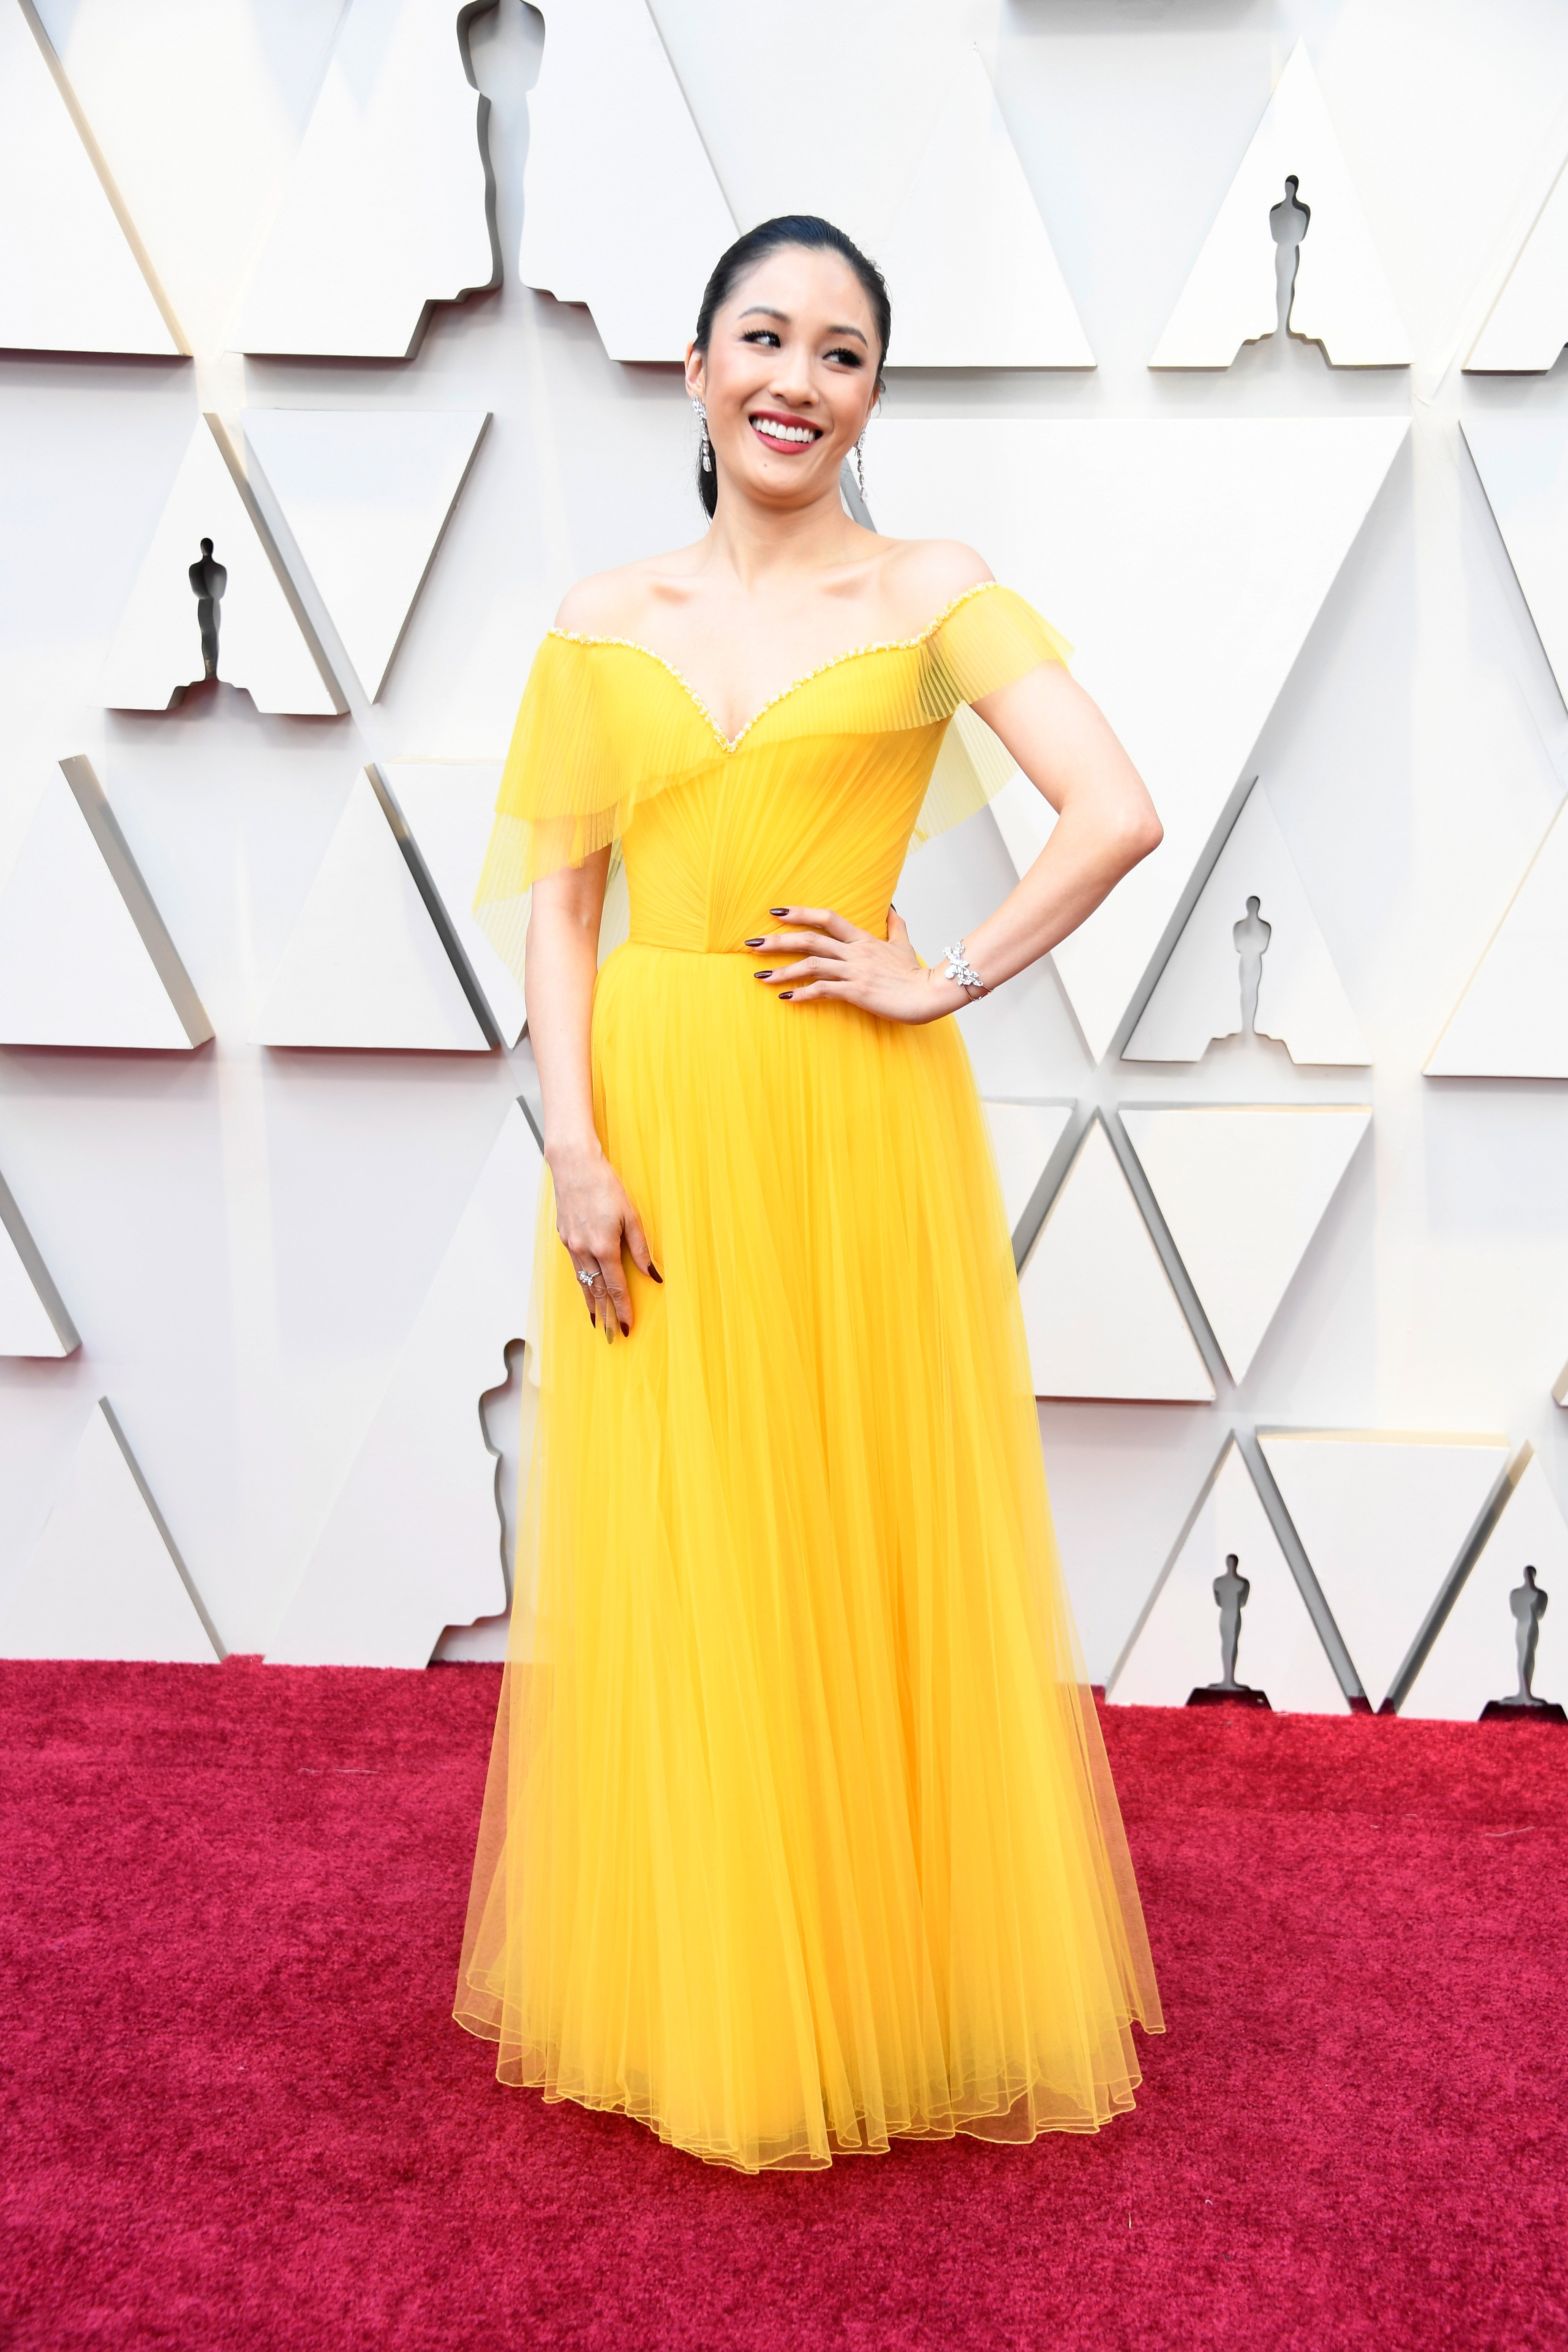 Oscars 2019 Red Carpet: Live Updates & Coverage - Oscars ...